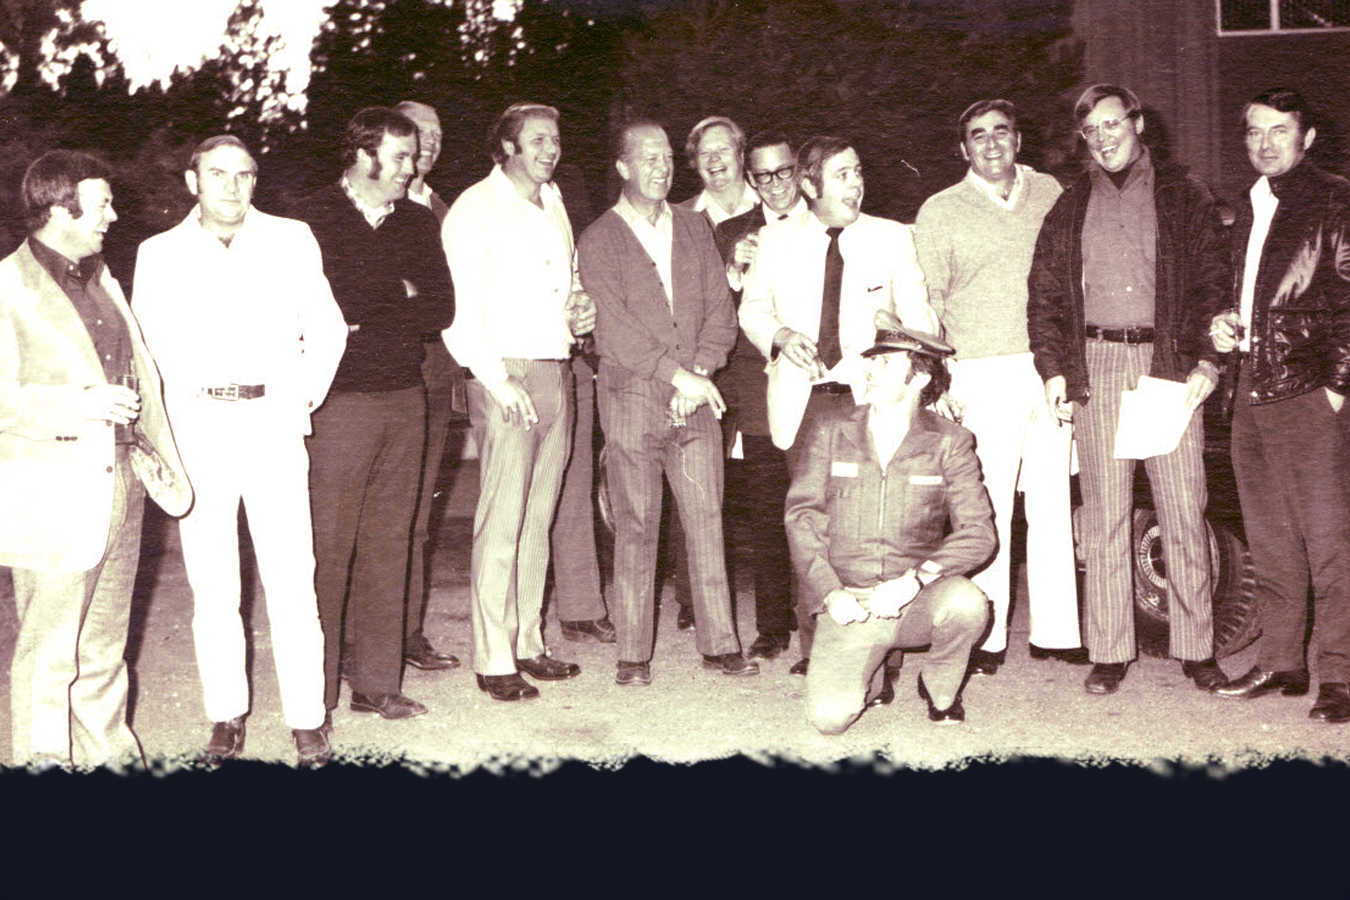 After taking over for a drunken cab driver on a group visit to Las Vegas in 1980, member Curt Boulet (kneeling) receives a Checker taxi, jacket and hat as a joke from fellow Club members on his birthday.